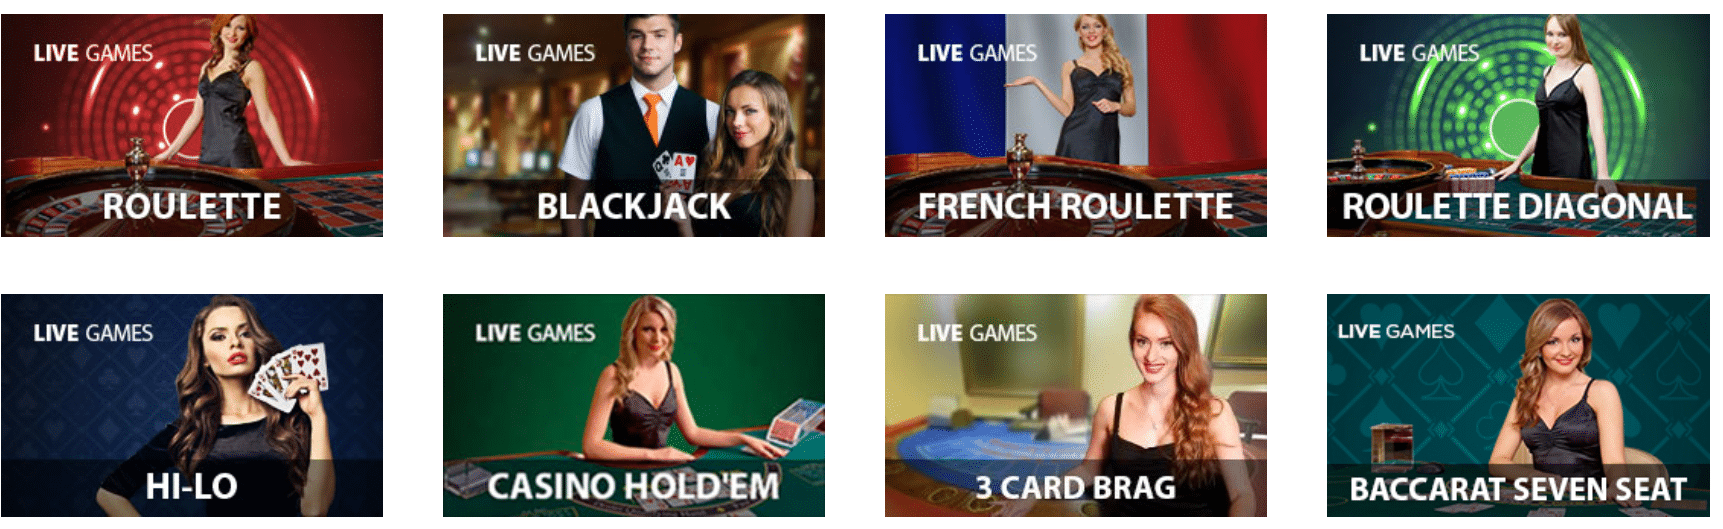 Casino.com Promo Codes 2019 for New Players